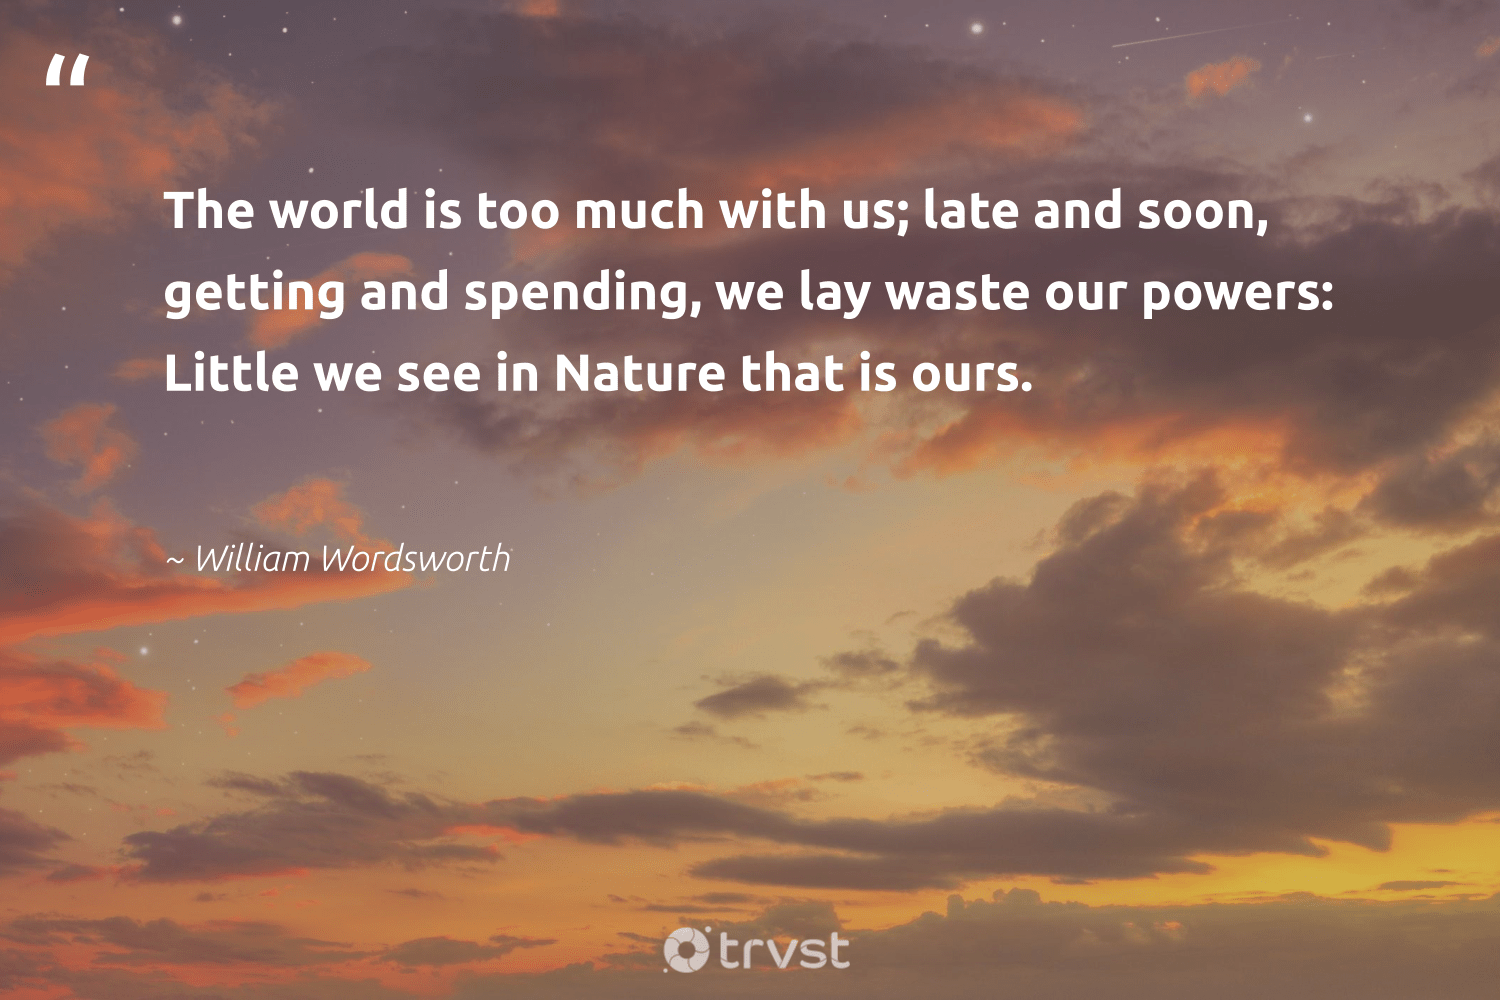 """""""The world is too much with us; late and soon, getting and spending, we lay waste our powers: Little we see in Nature that is ours.""""  - William Wordsworth #trvst #quotes #environment #waste #nature #ecofriendly #giveback #changetheworld #conservation #savetheplanet #gogreen #collectiveaction"""